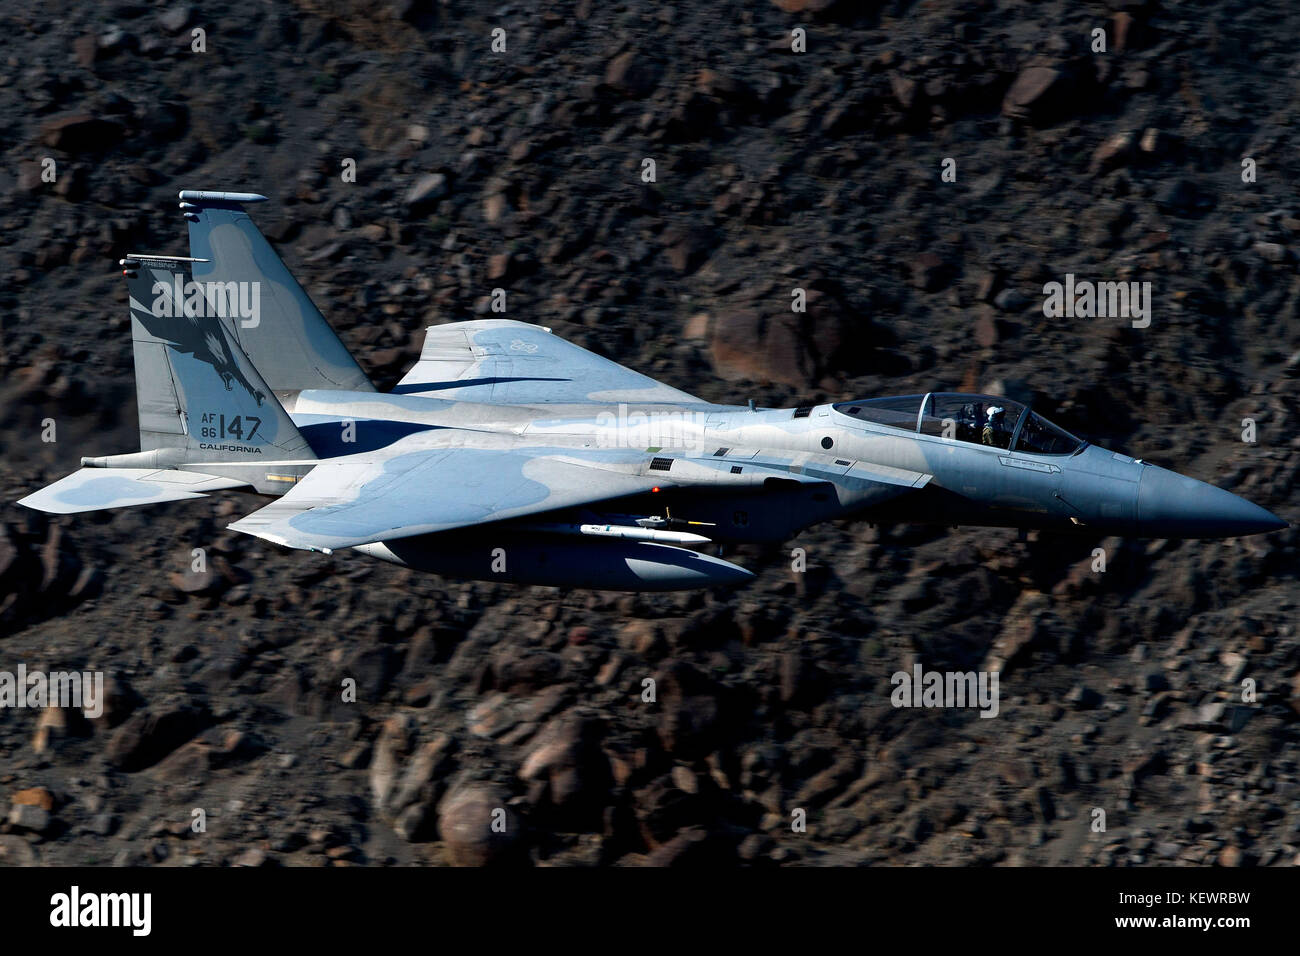 United States Air Force McDonnell-Douglas F-15C Eagle (86-147) from the 144th Fighter Wing, California Air National - Stock Image